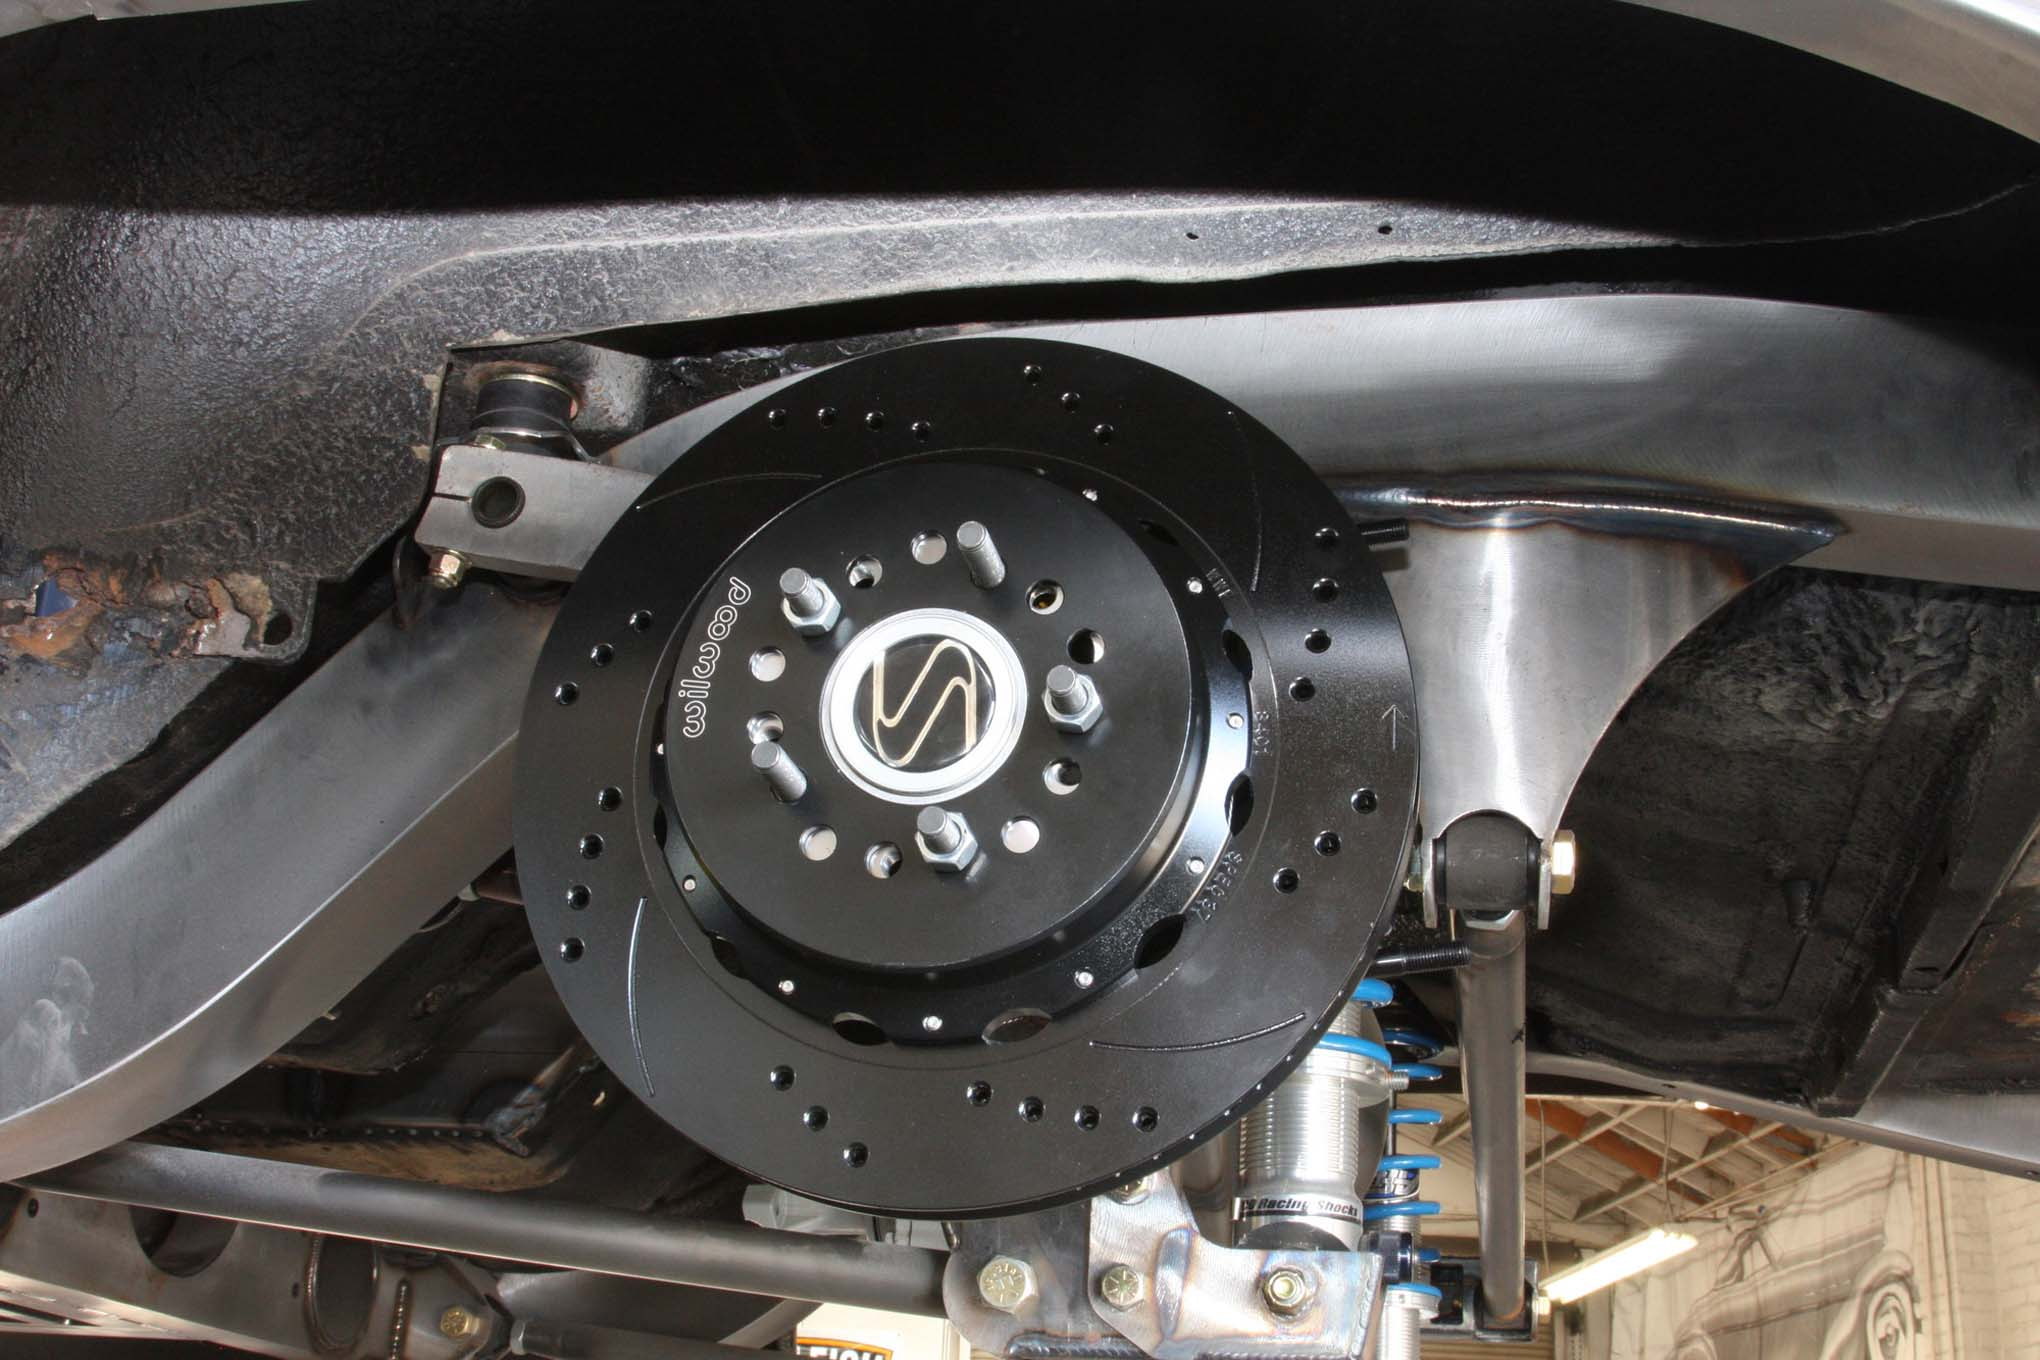 Wilwood's combination hat and parking brake drum is compact and effective while hiding all the inner workings.